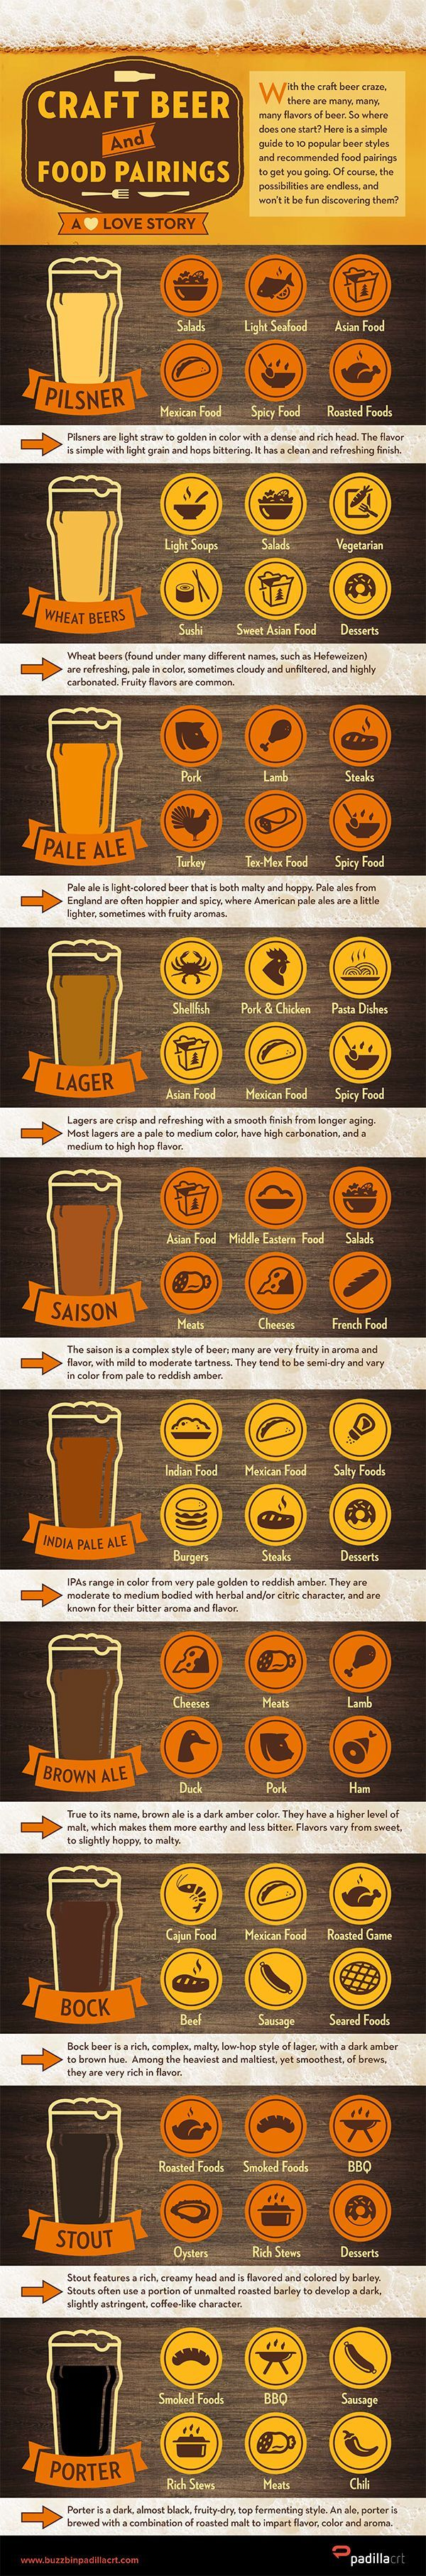 Craft Beer-Food Pairing Infographic